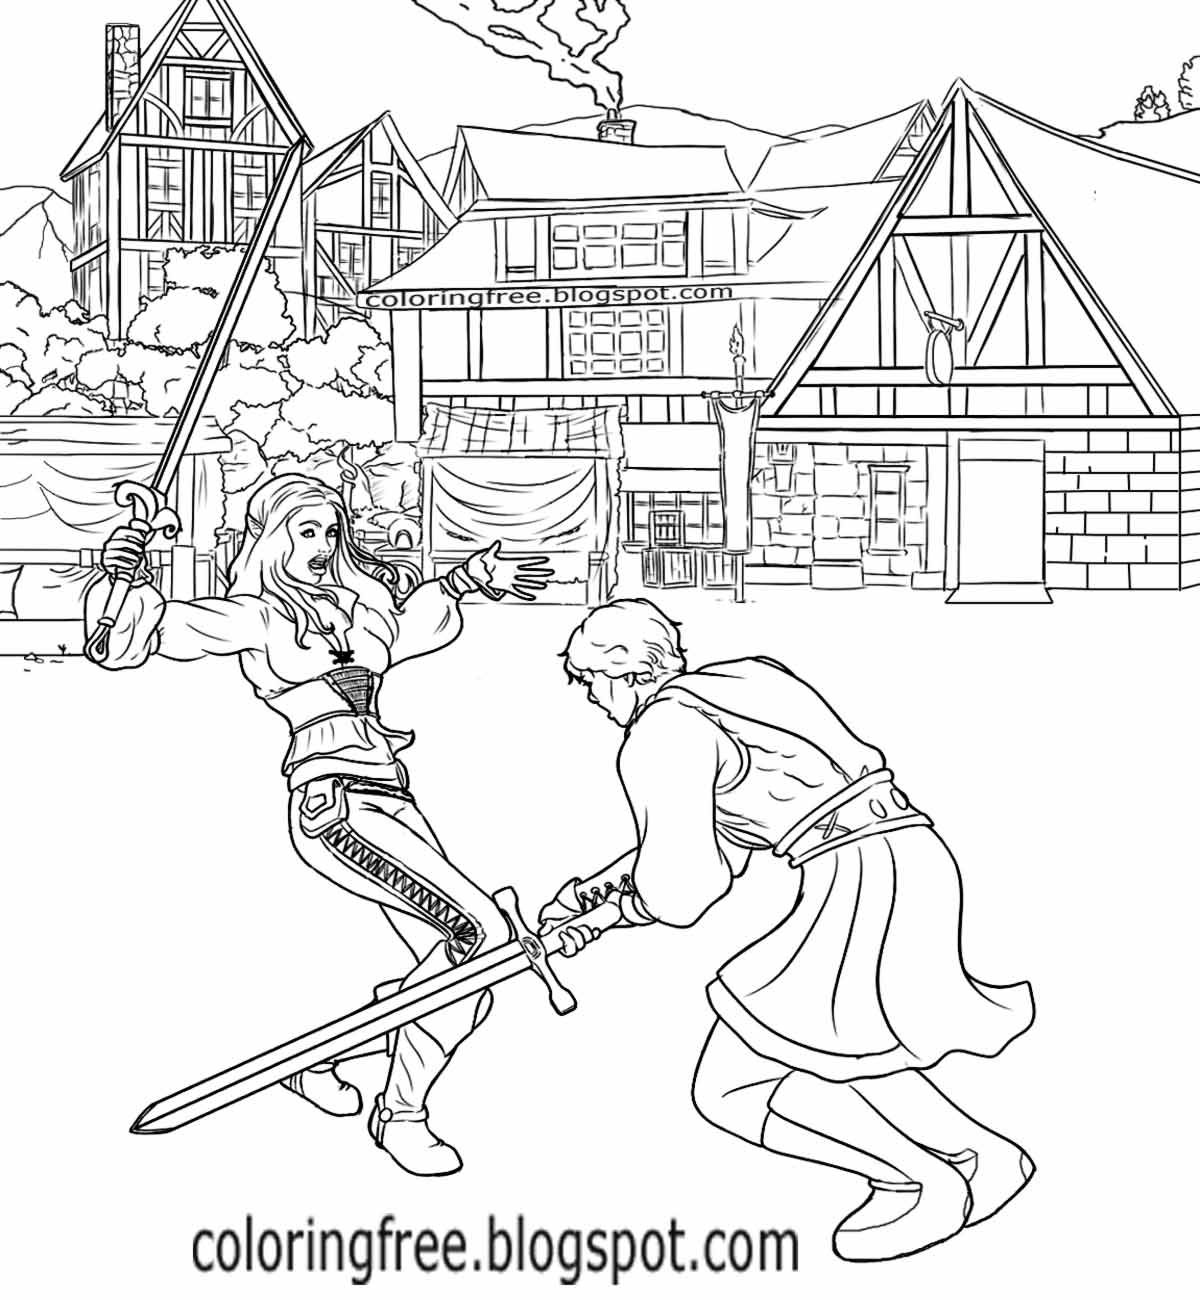 Free coloring pages printable. Battle clipart medieval war